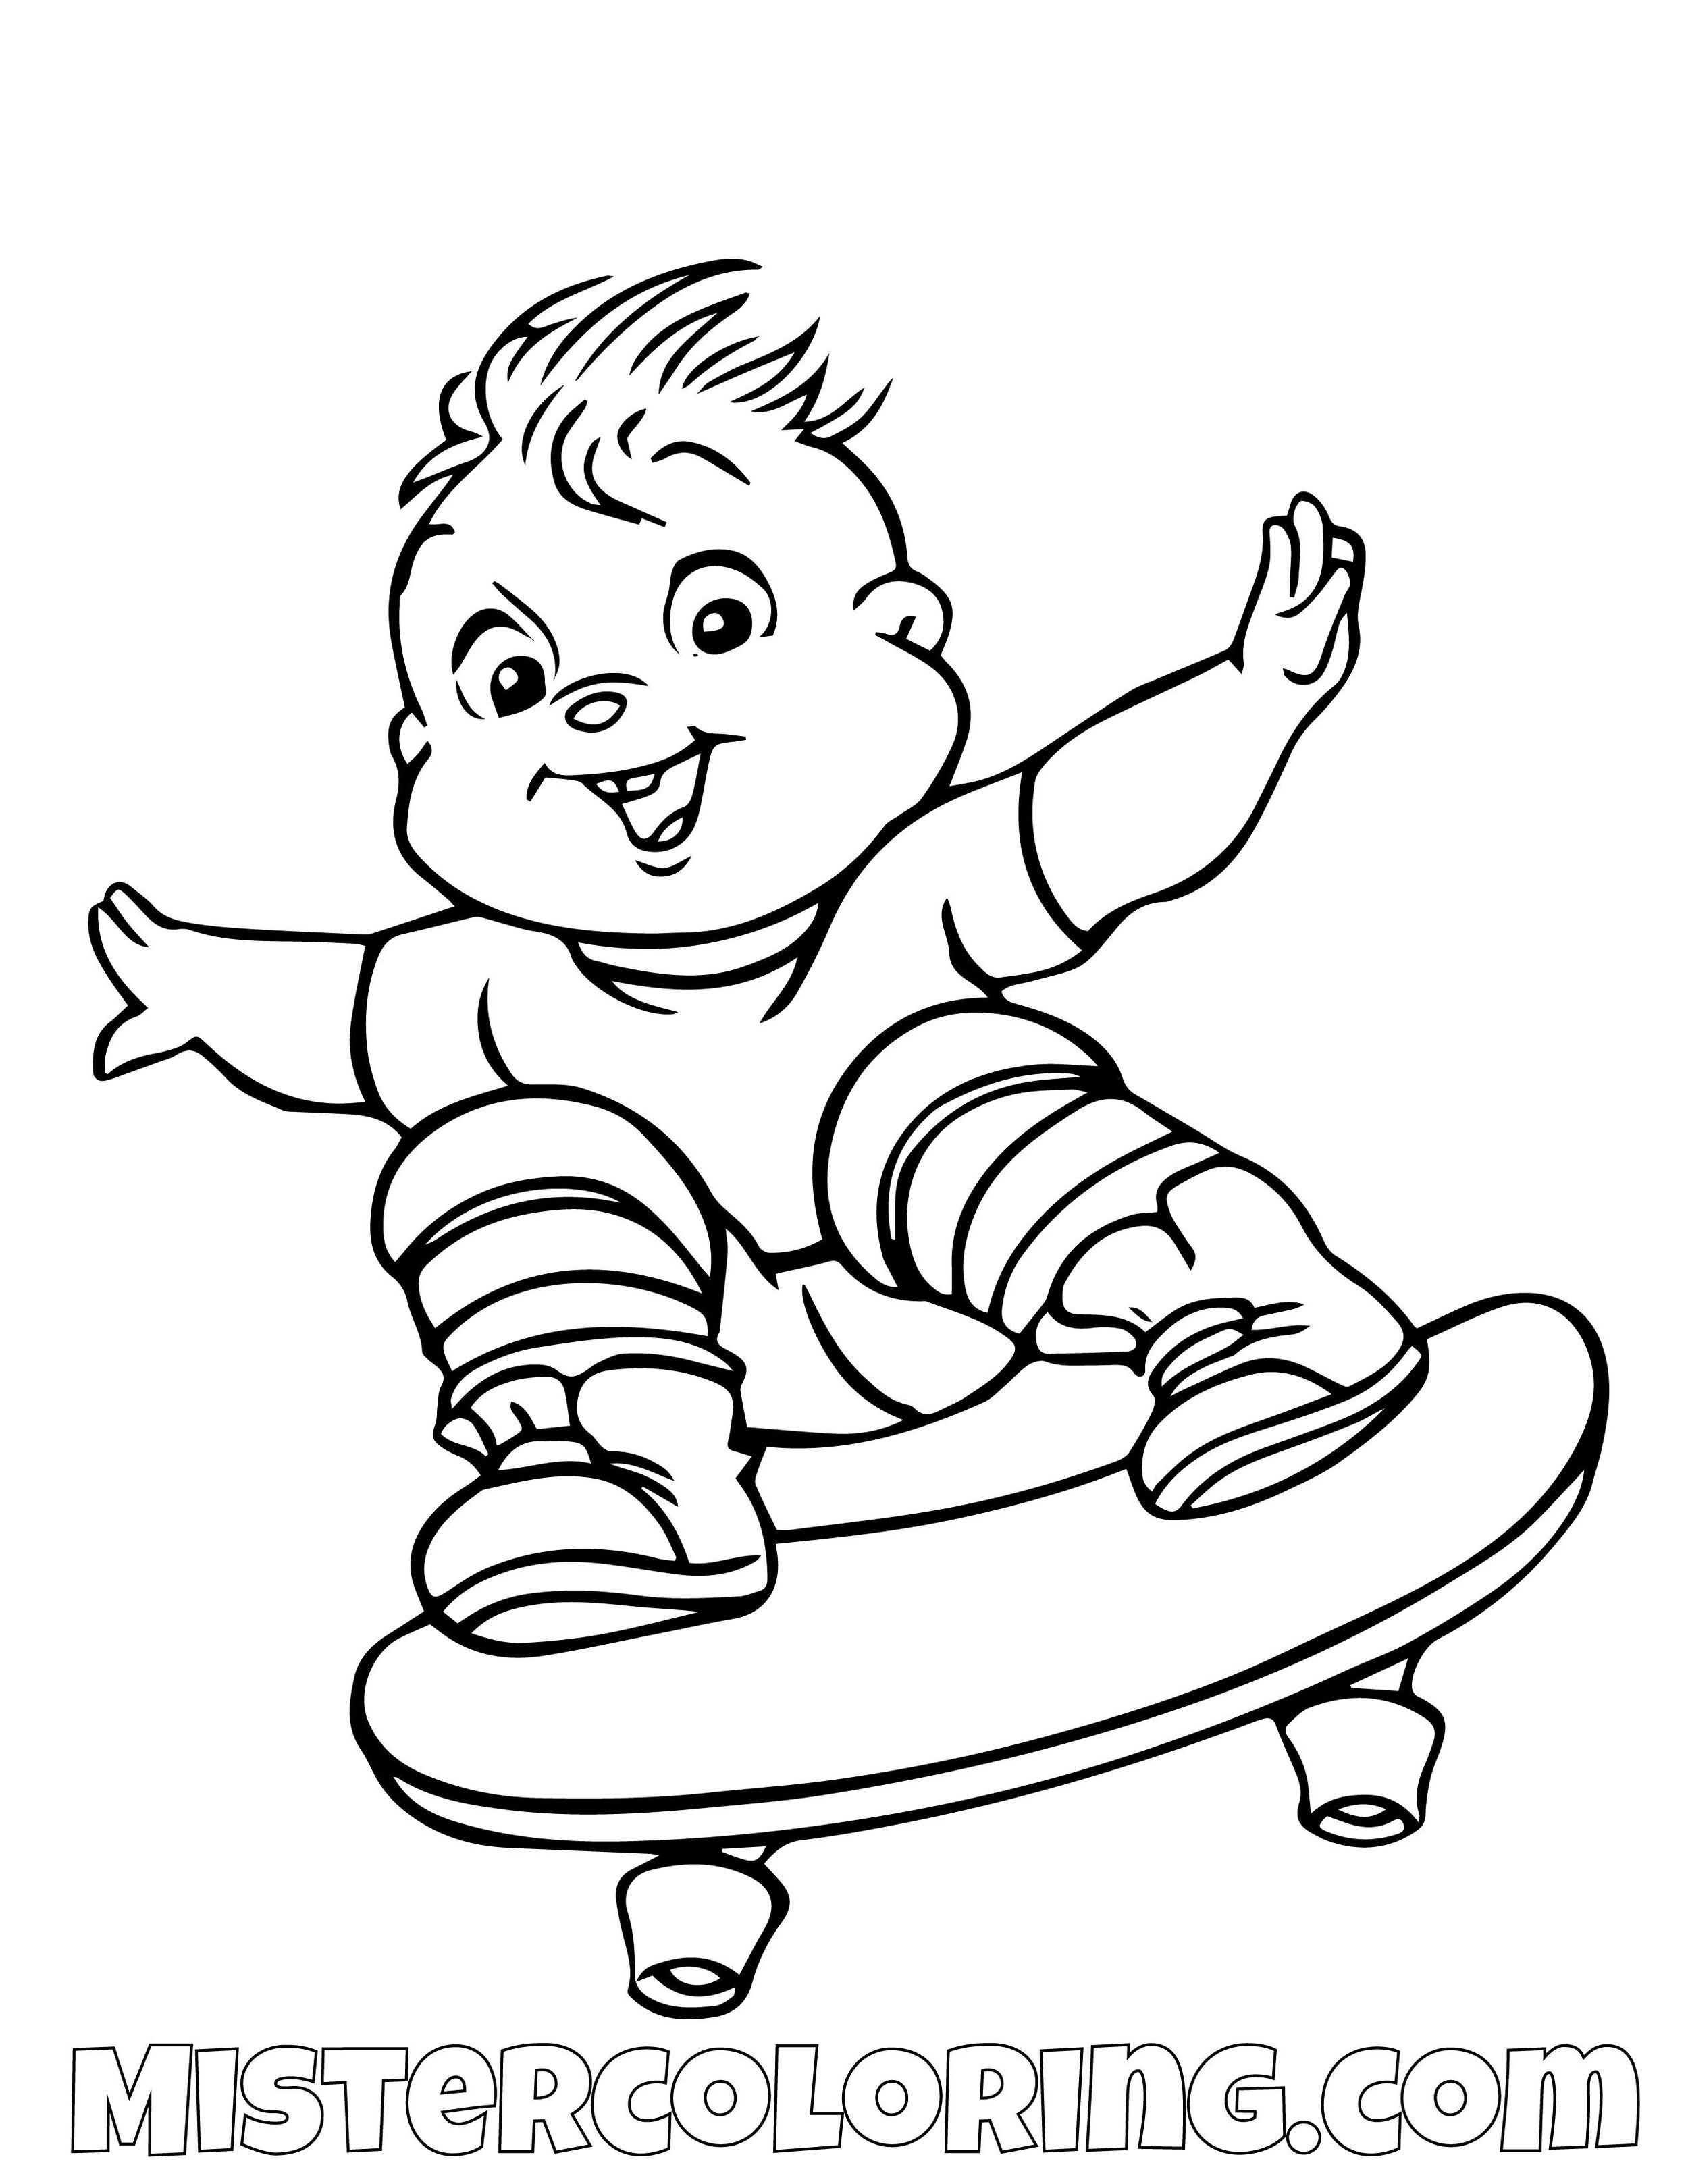 Striped squirrels Coloring Pages | Chipmunk Coloring Page and Kids ... | 1294x1000